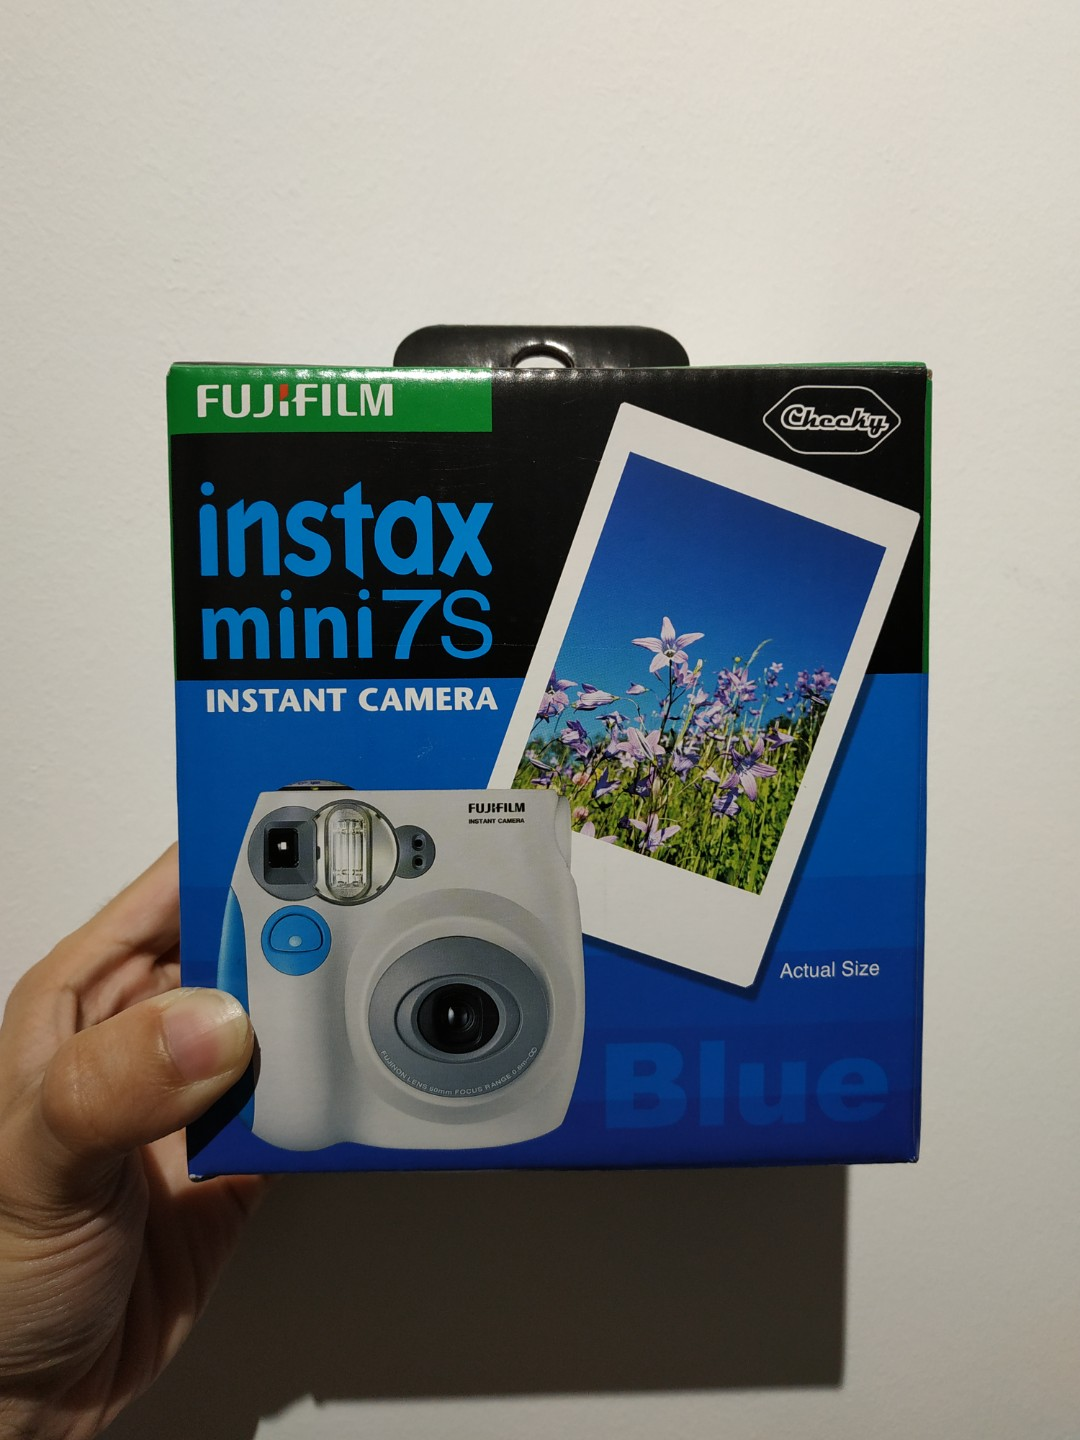 5422d86f714 BNIB Instax Mini 7S (Blue), Photography, Cameras, Others on Carousell